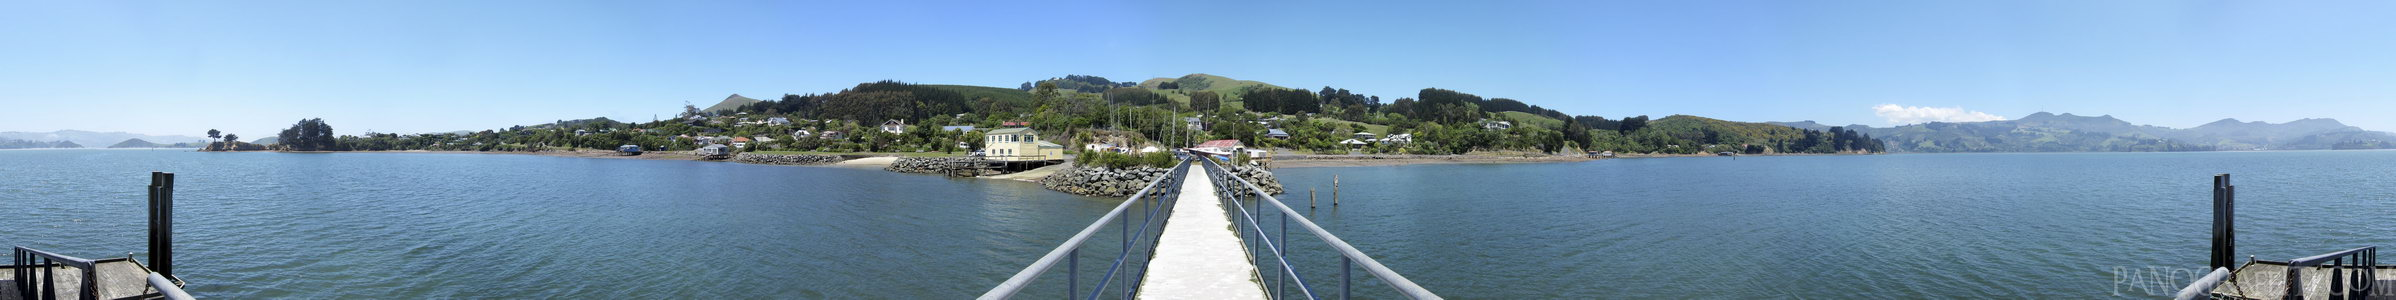 Broad Bay From A Dock - Otago Peninsula, Otago, New Zealand